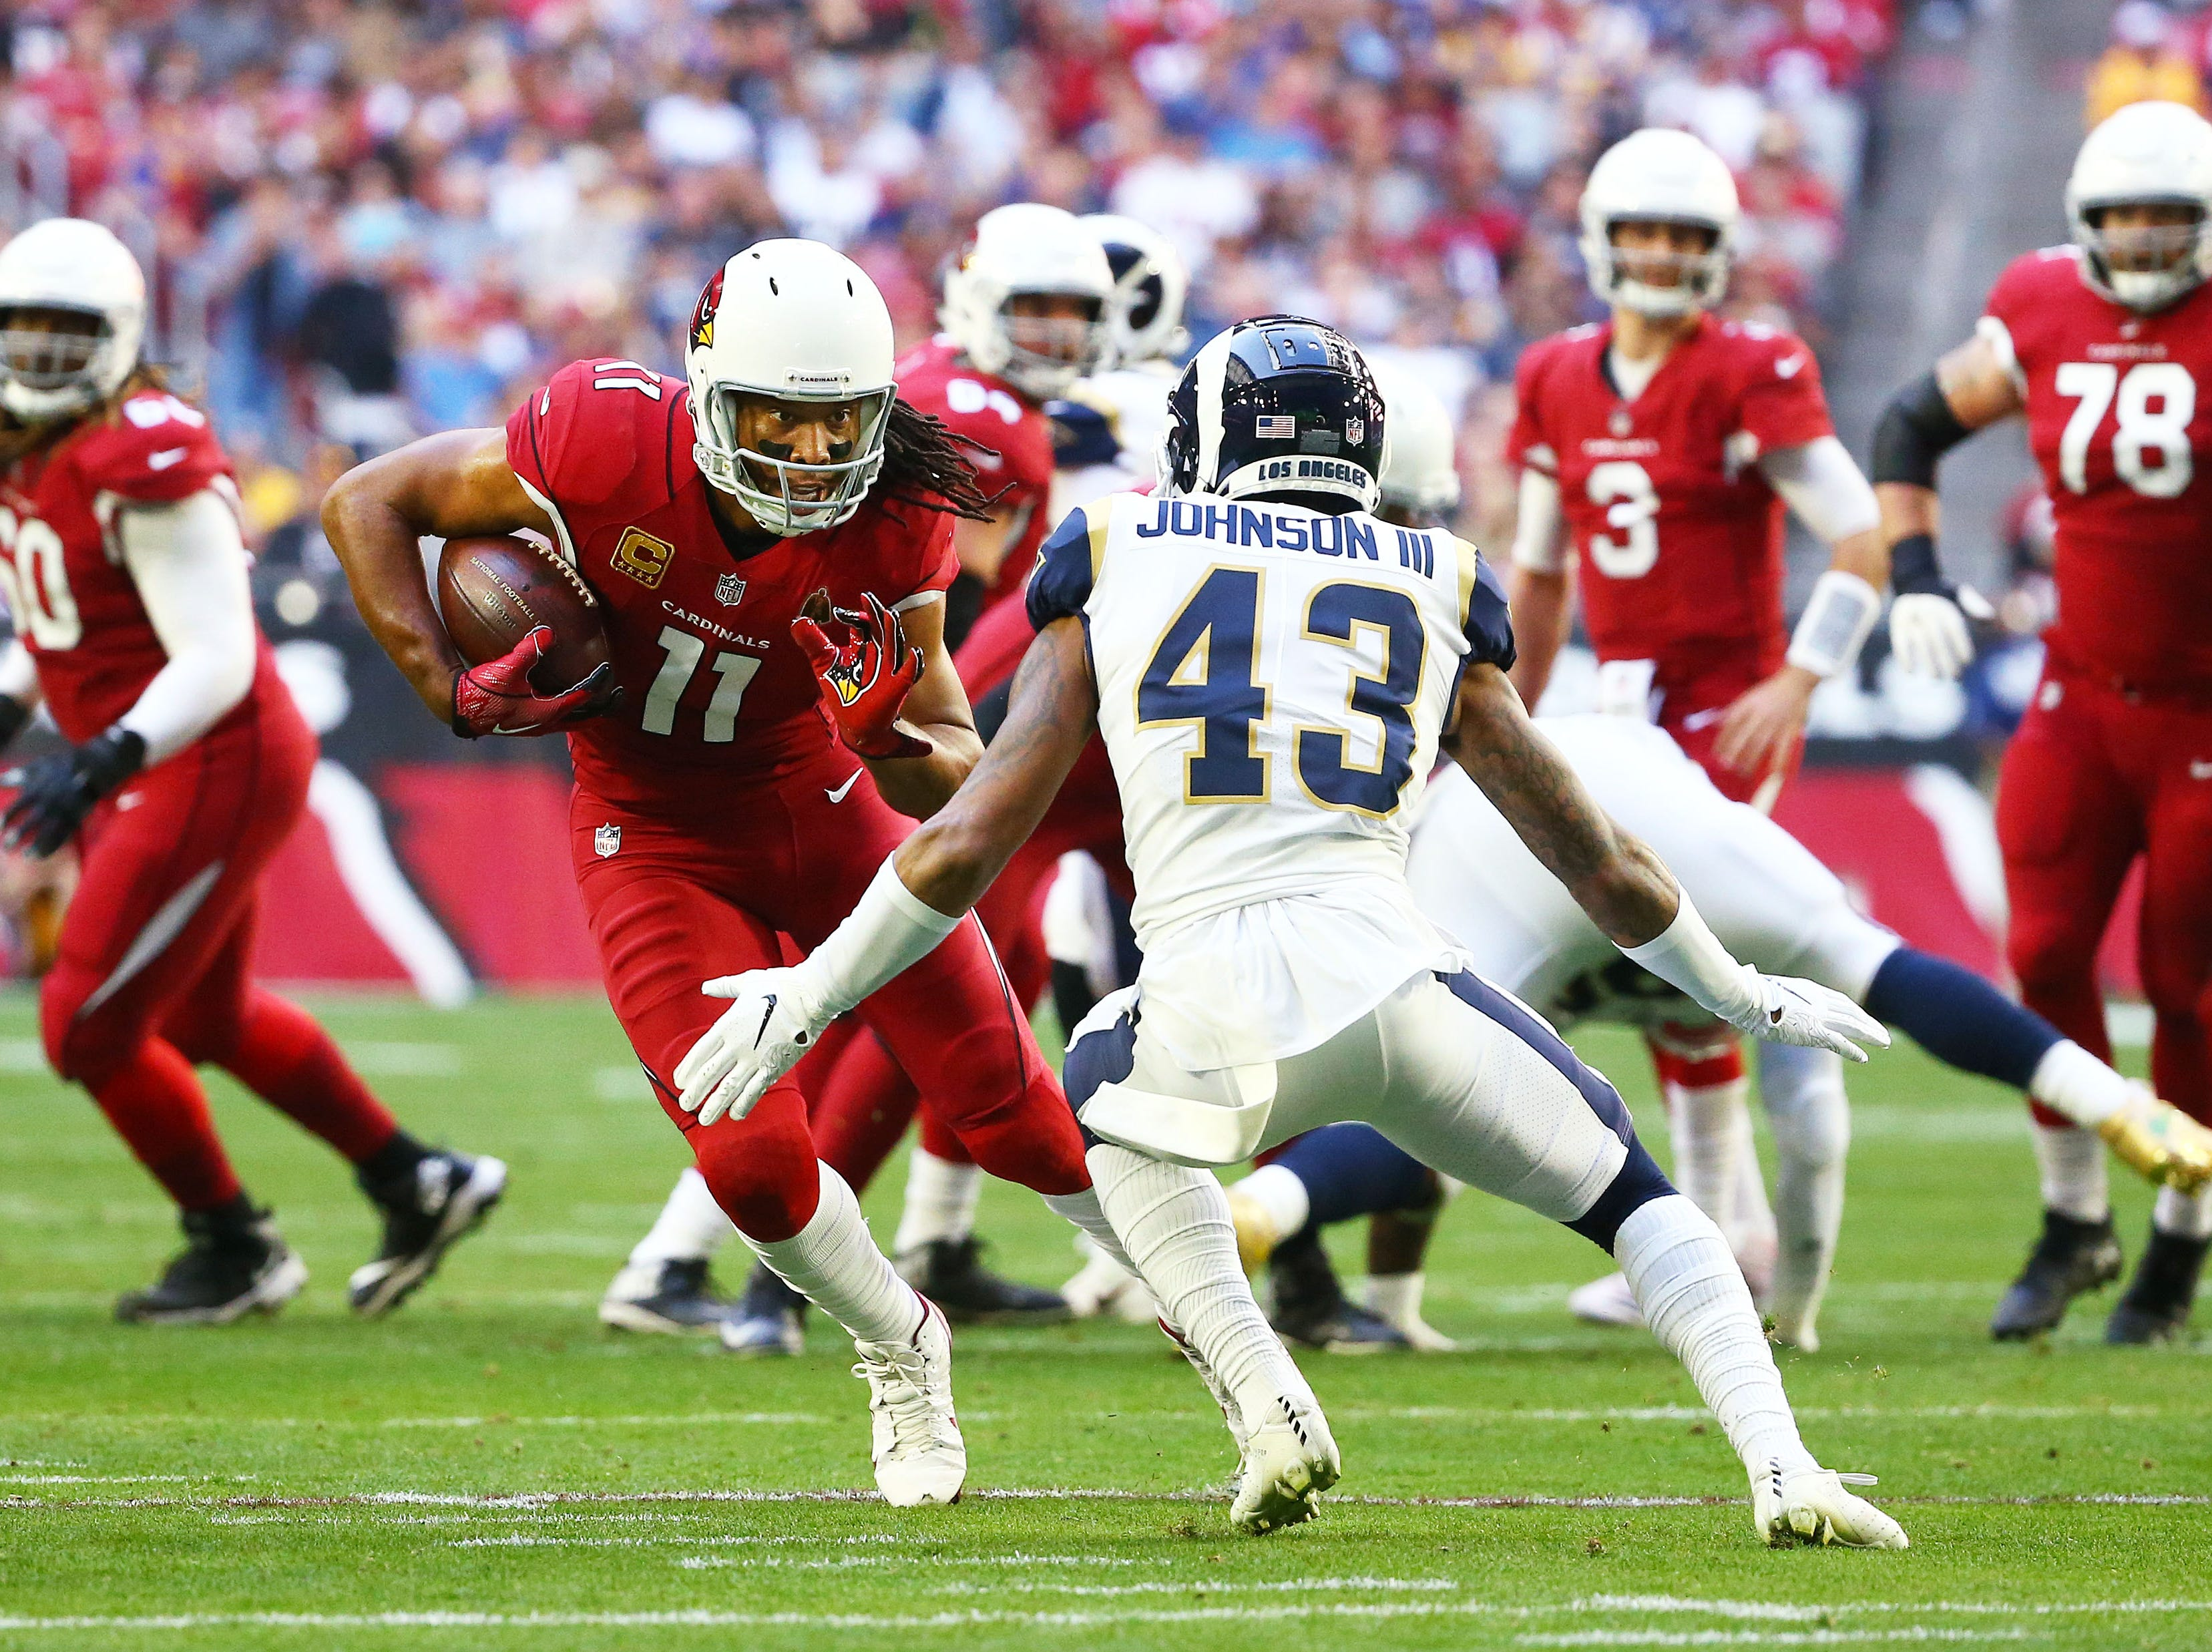 Arizona Cardinals wide receiver Larry Fitzgerald runs for a first down against the Los Angeles Rams in the first half on Dec. 23 at State Farm Stadium.